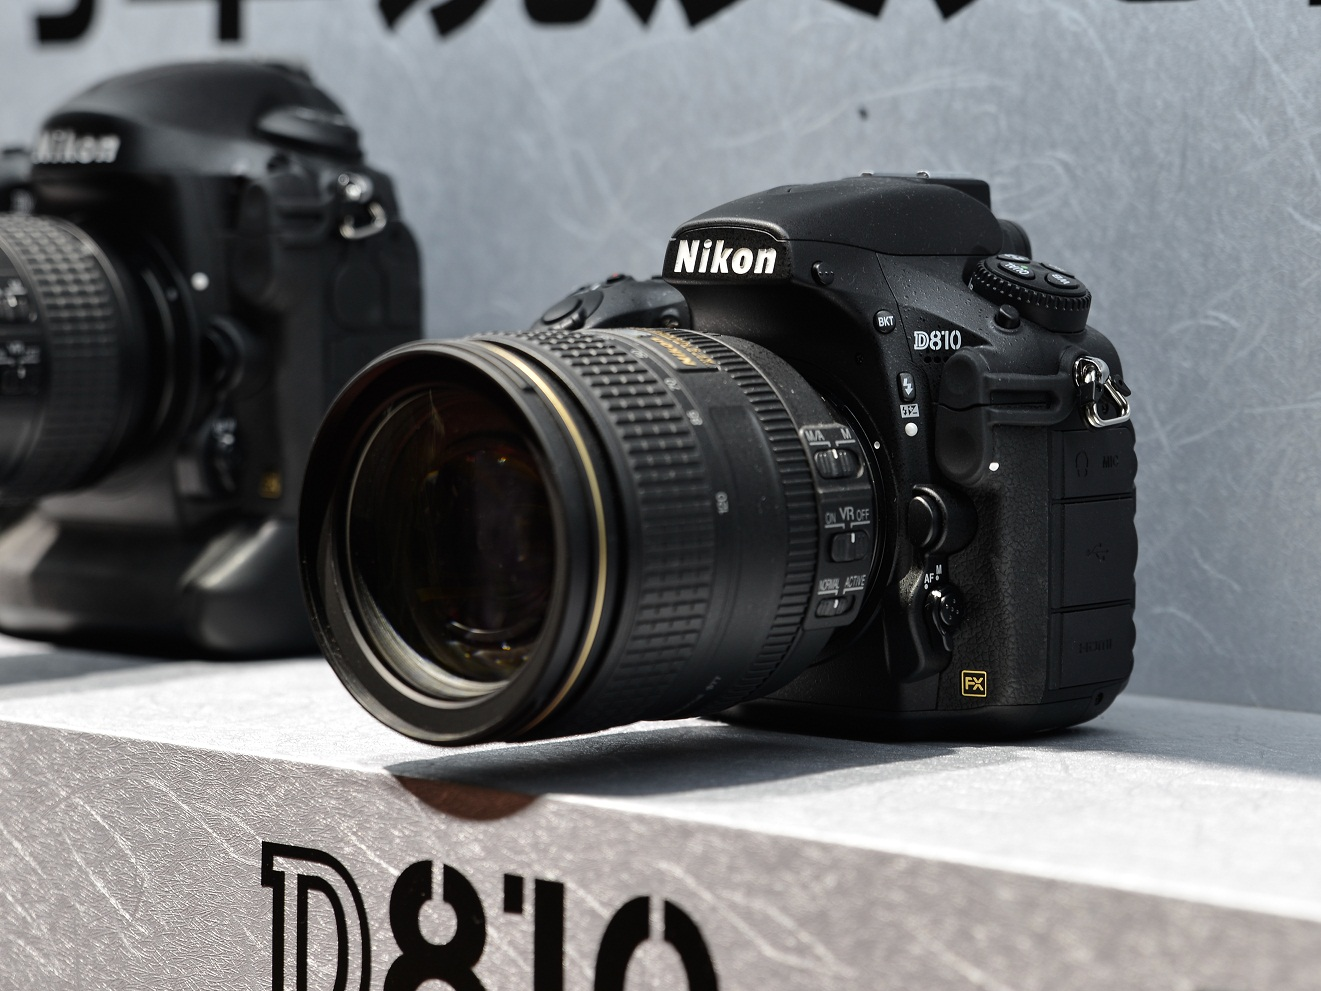 Nikon cameras offer photographers a varied collection of options.